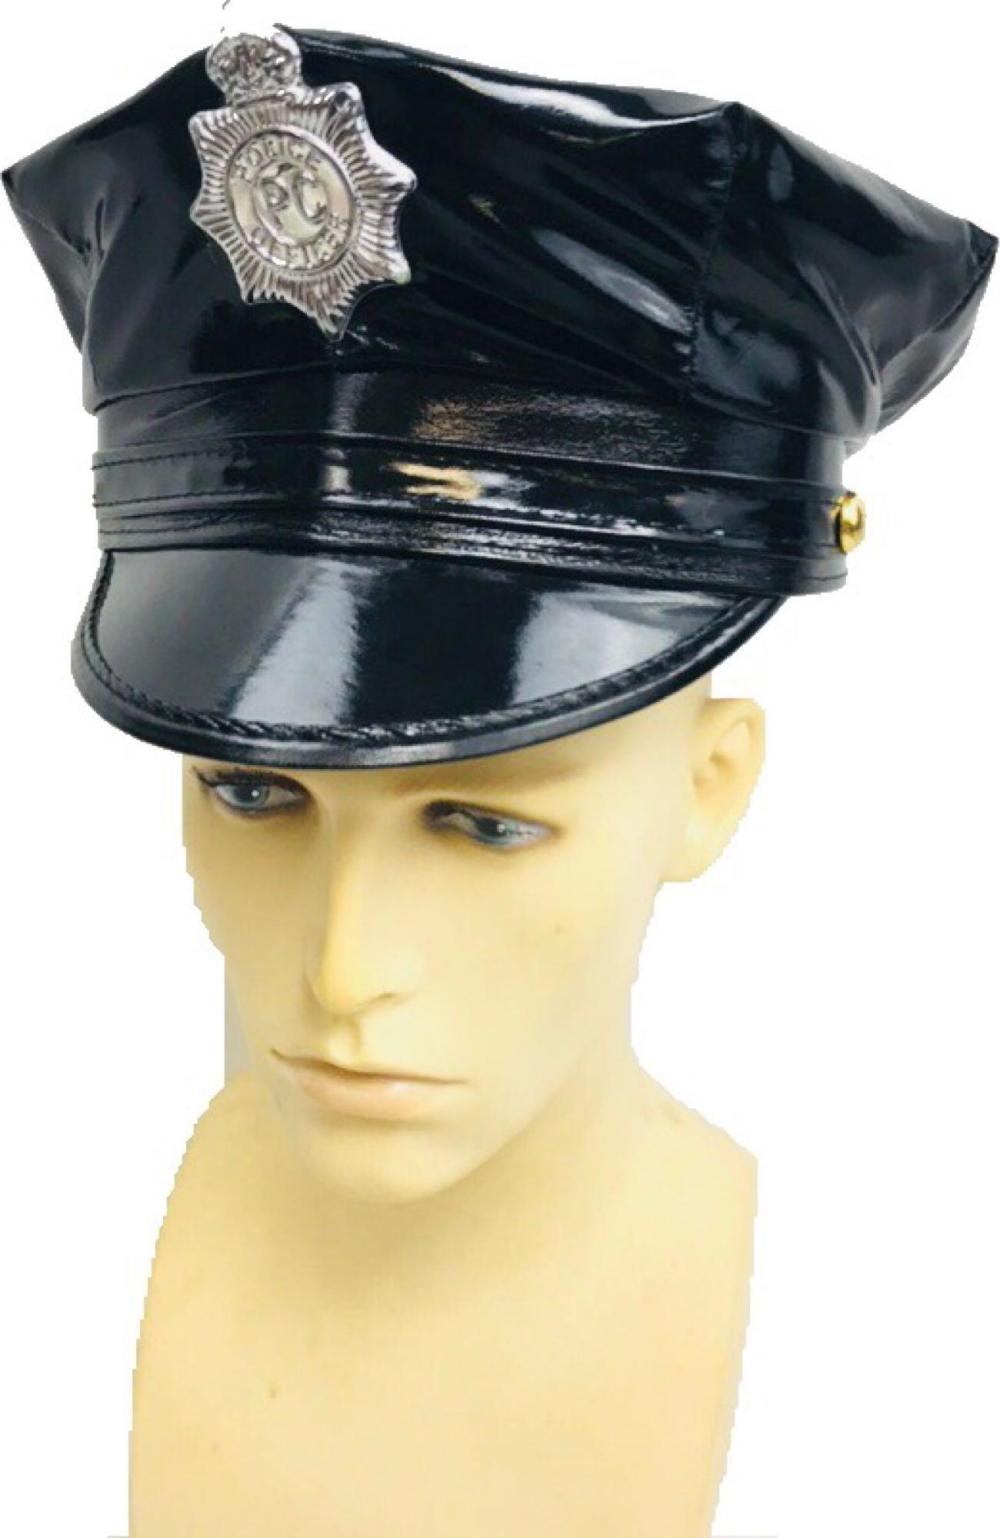 e6b6941863c Women s Vinyl Cop Hat Halloween Costume Accessory for Cosplay - Leg Avenue